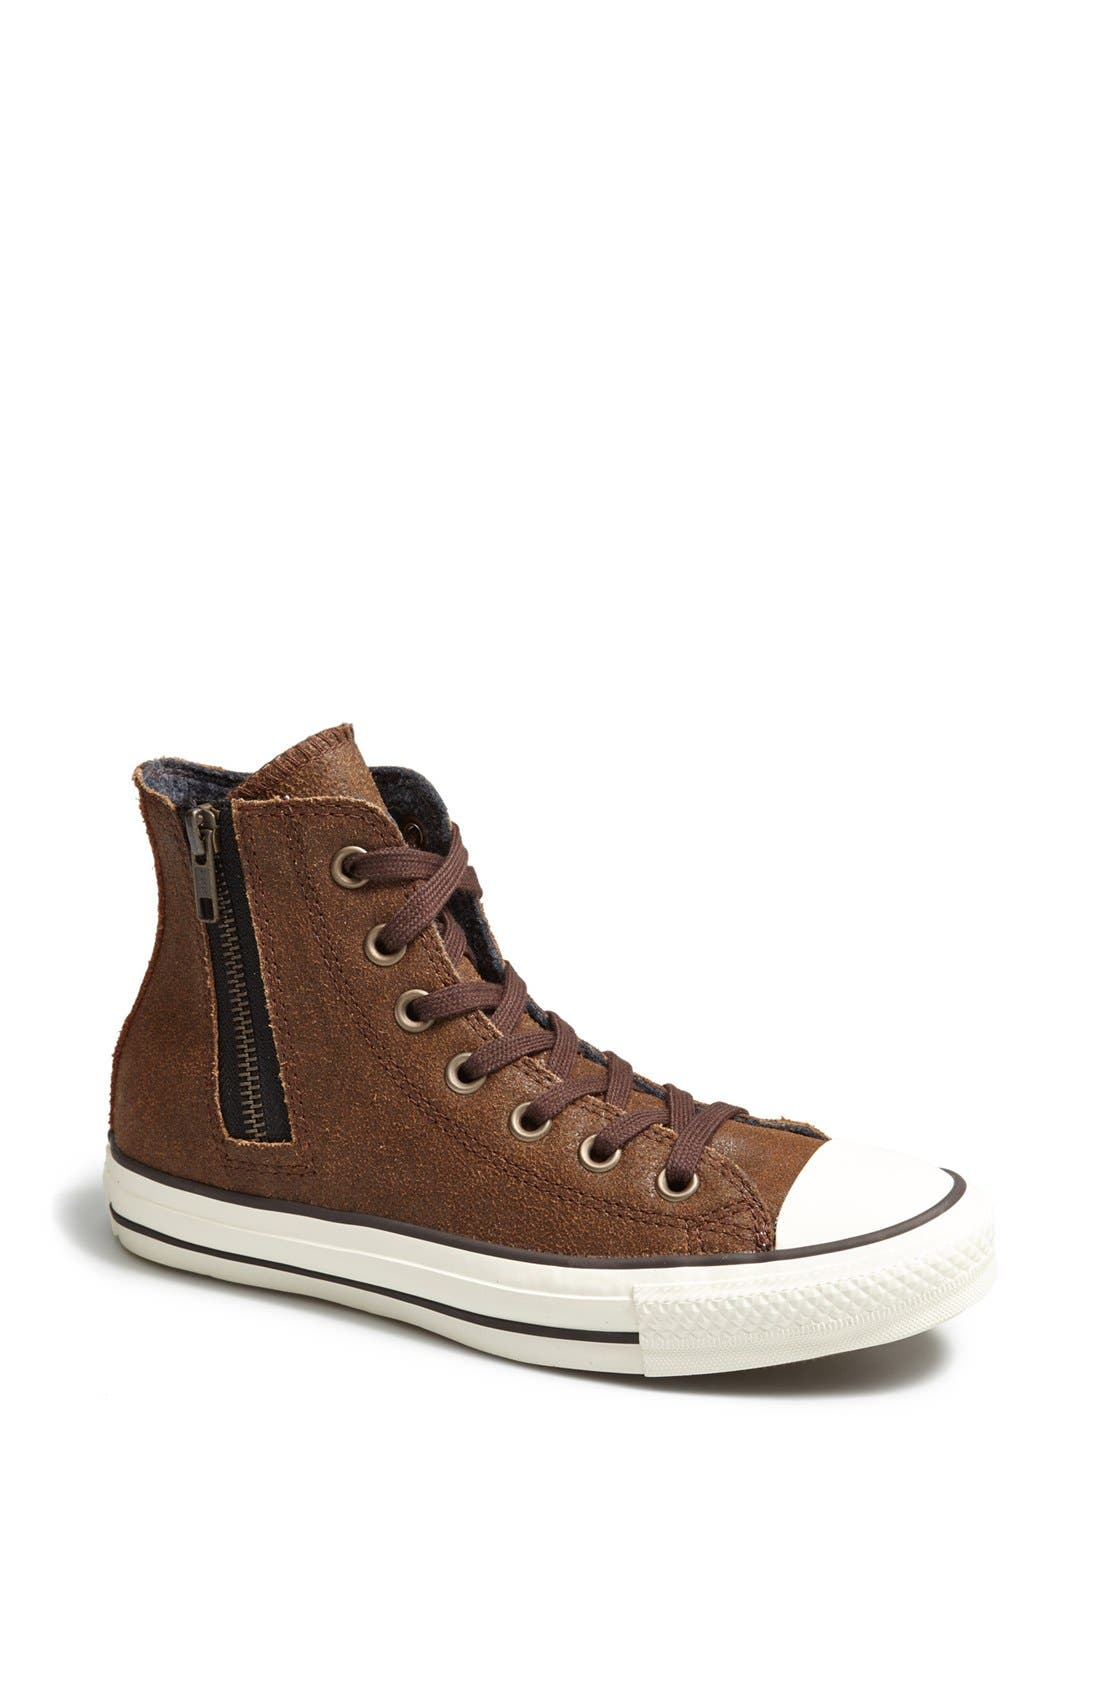 Main Image - Converse Chuck Taylor® 'Aviator' Side Zip Leather High Top Sneaker (Women)